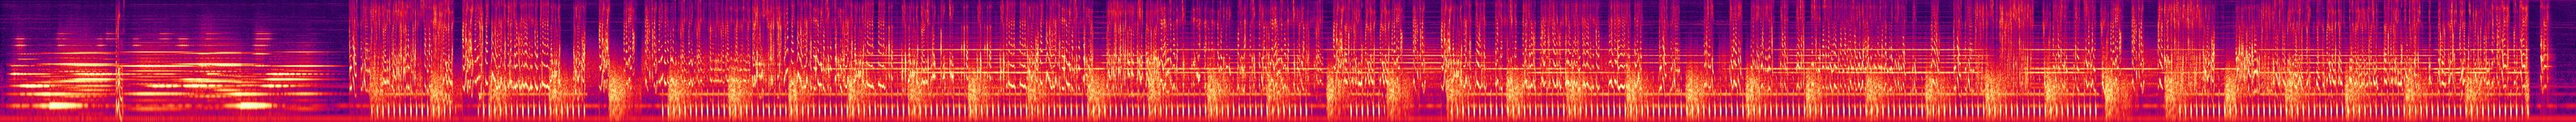 The Dreams - 1. Running - Spectrogram.jpg